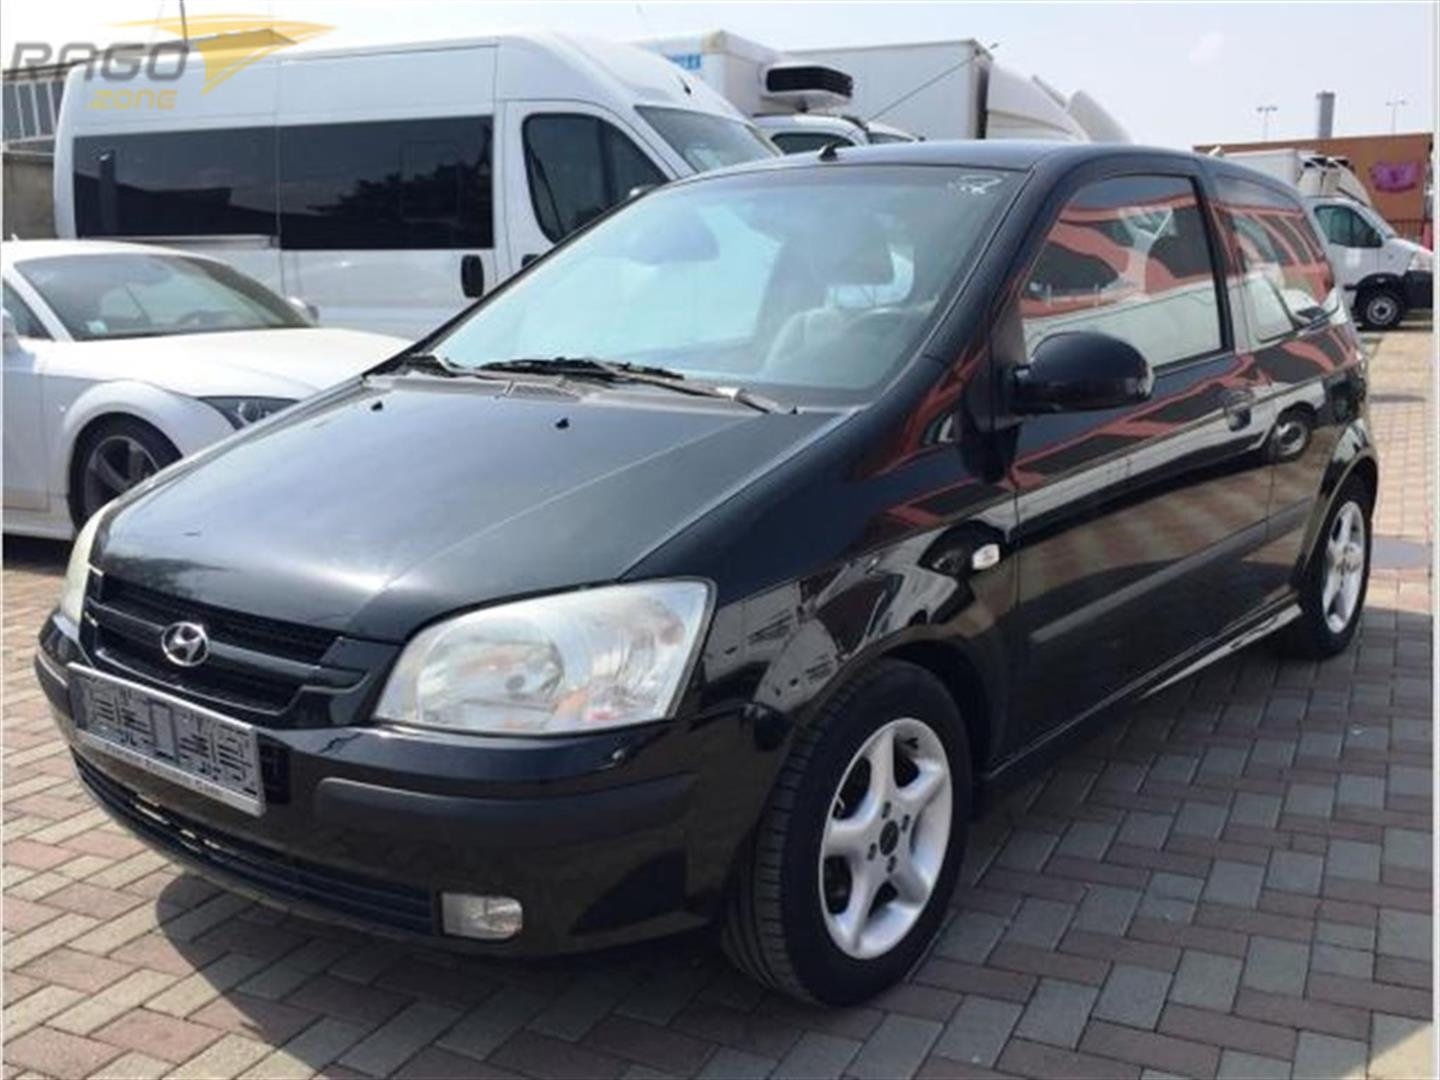 prodej hyundai getz 1 1 i alu kola hatchback rok 2004 inzer t 197889. Black Bedroom Furniture Sets. Home Design Ideas